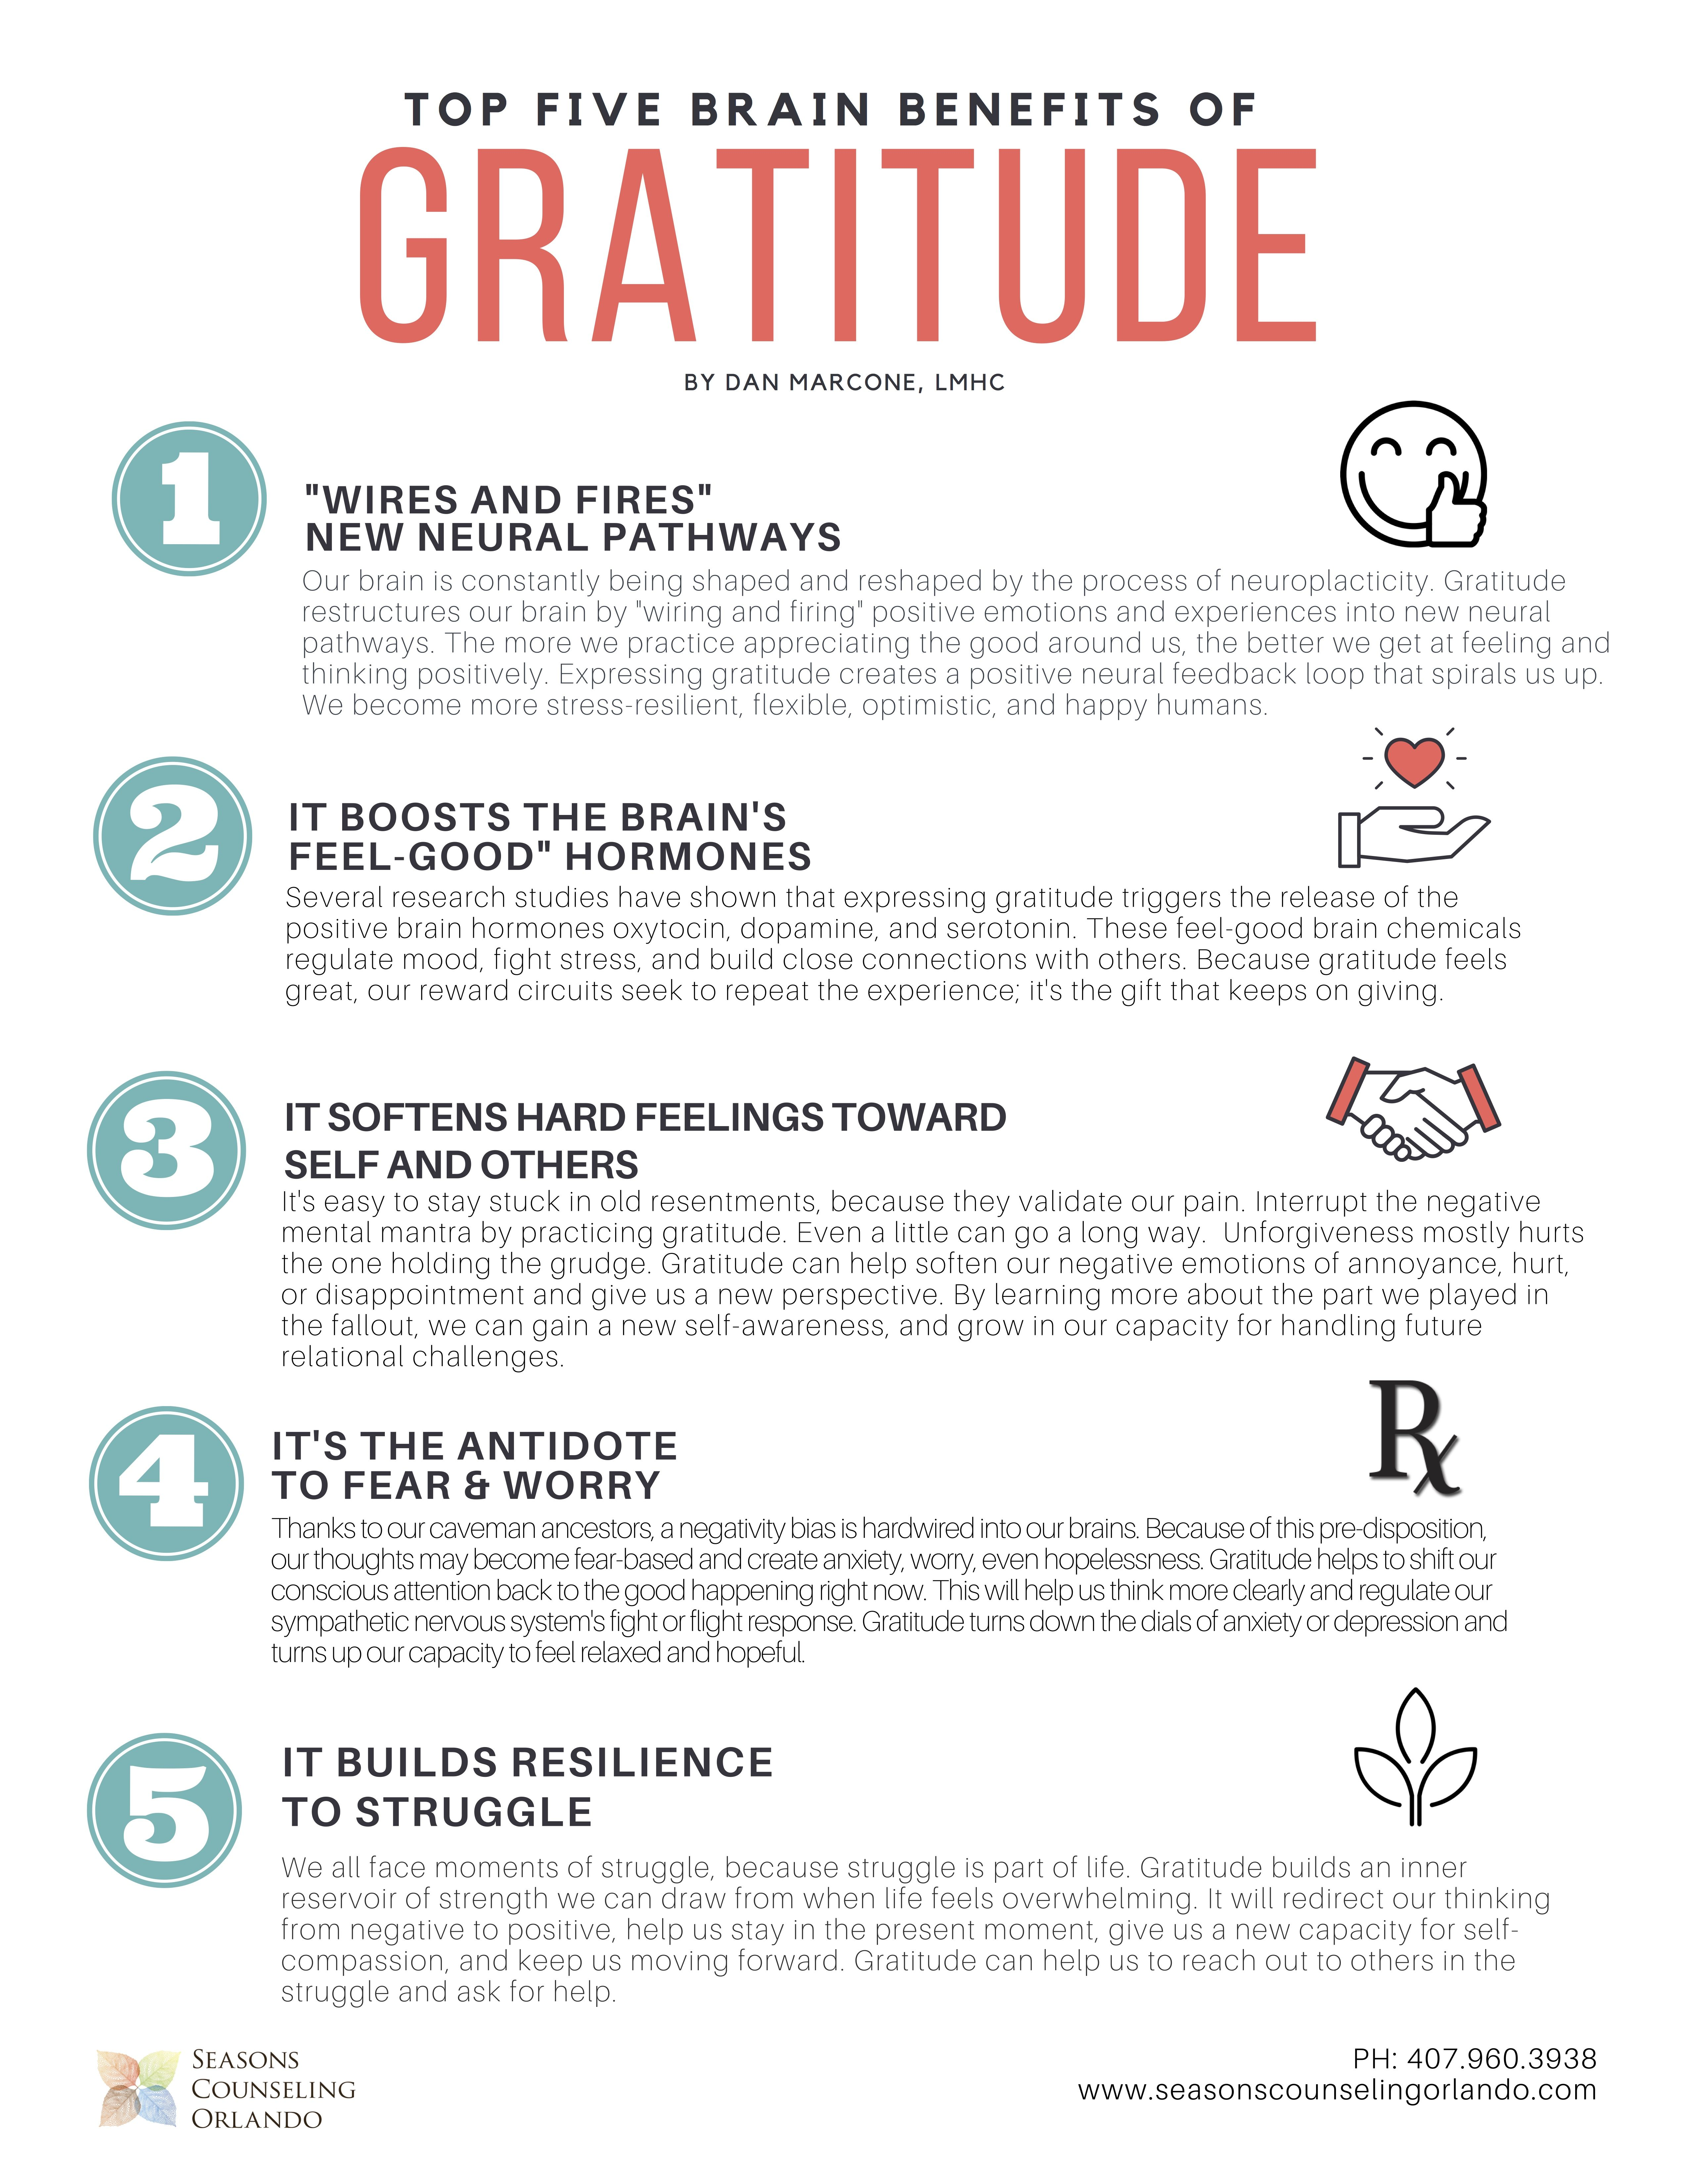 The Brain Benefits Of Gratitude